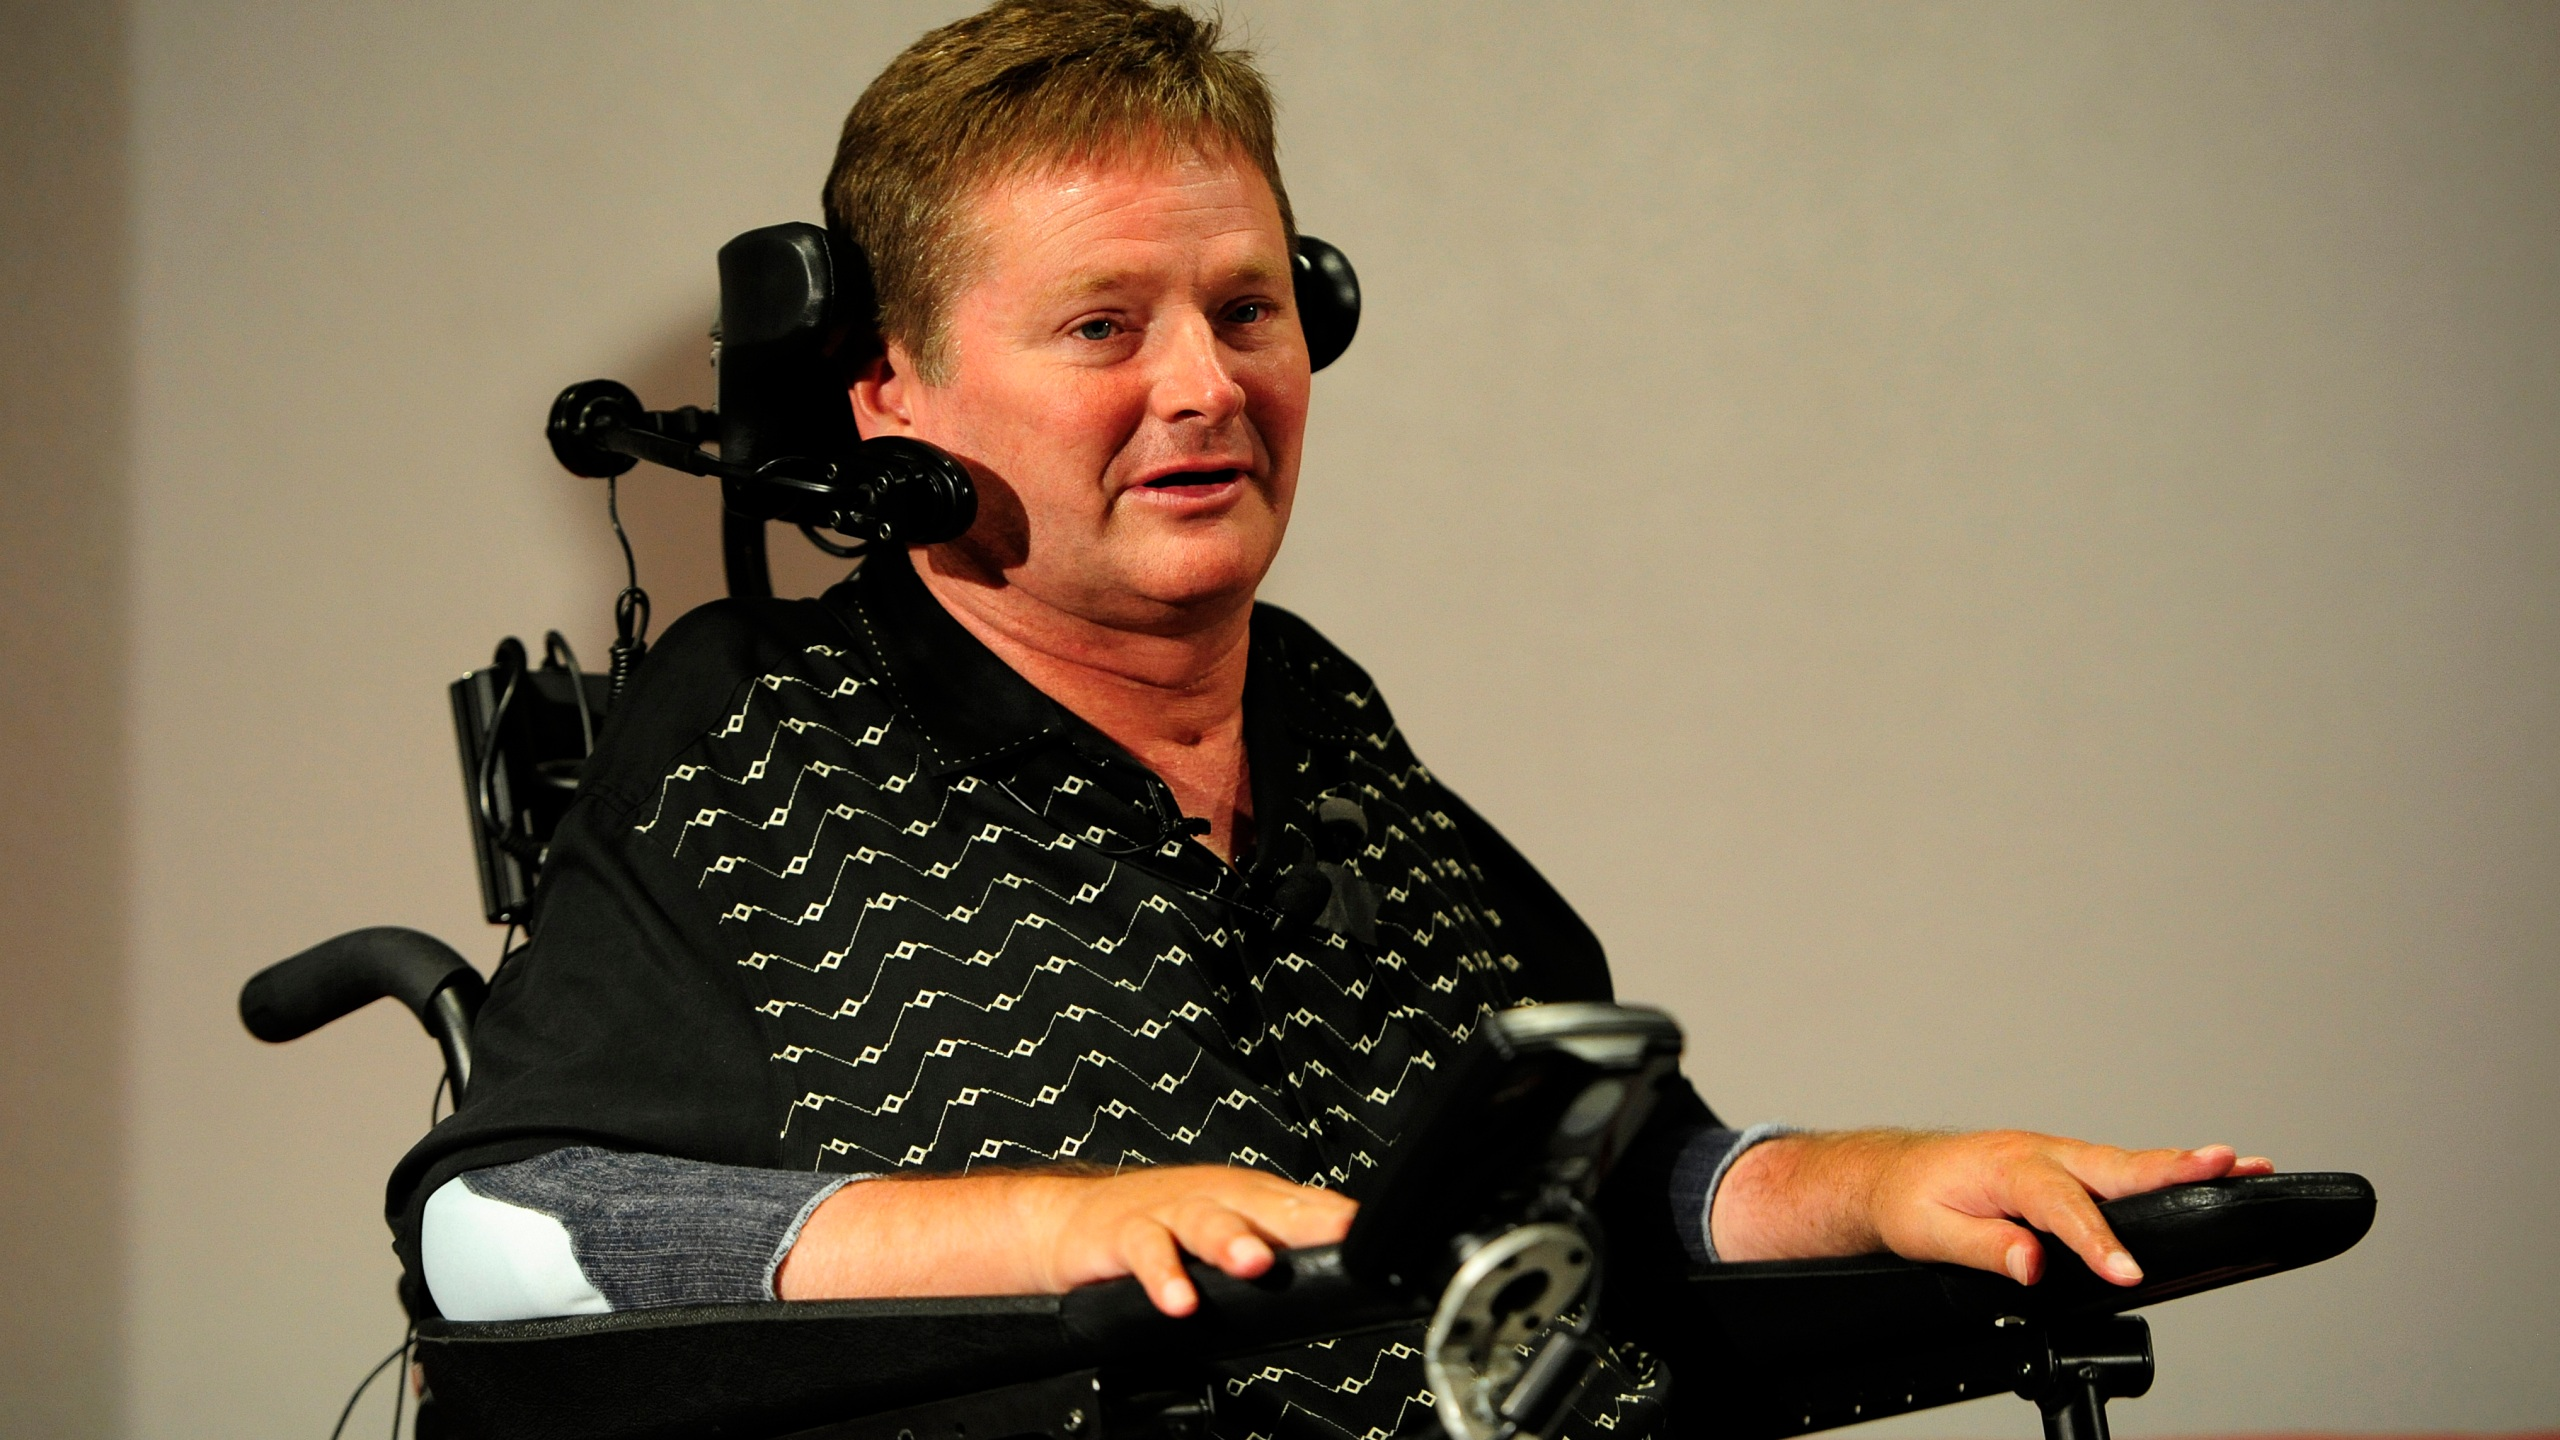 Sam Schmidt is honored guest at Breakfast at the Brickyard